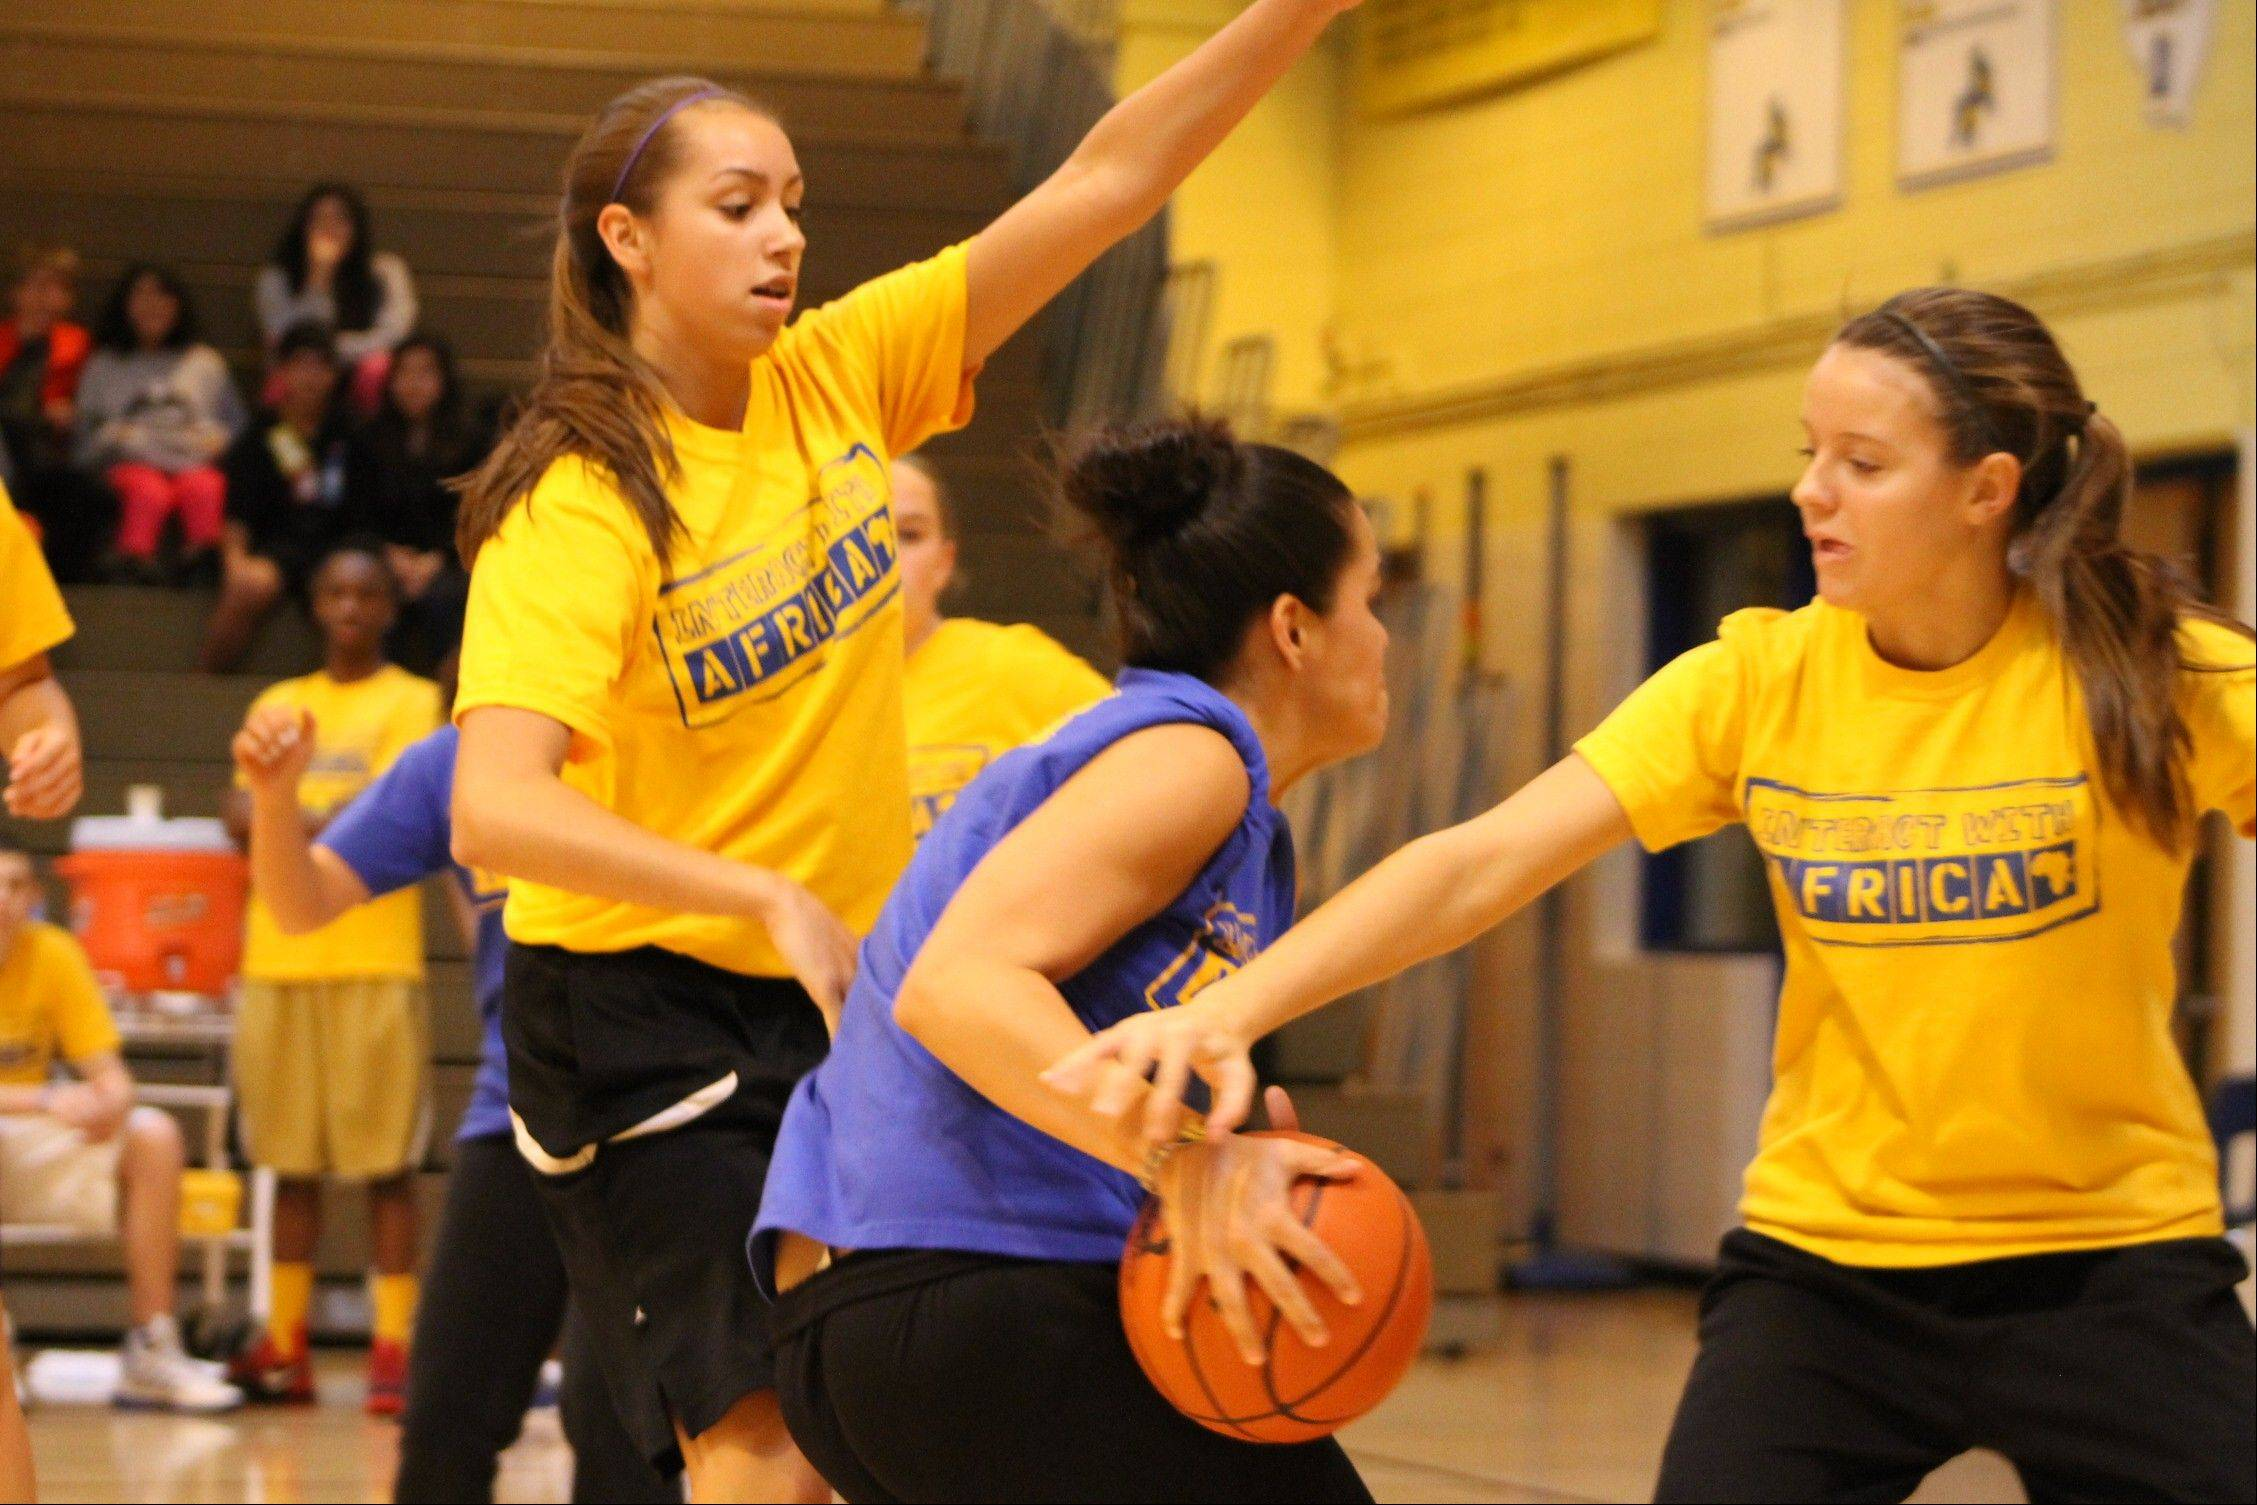 Wheeling High School's Deanna Kuzmanic, left and Elizabeth Smith, right, defend the basket in last year's Hoops for Africa game.